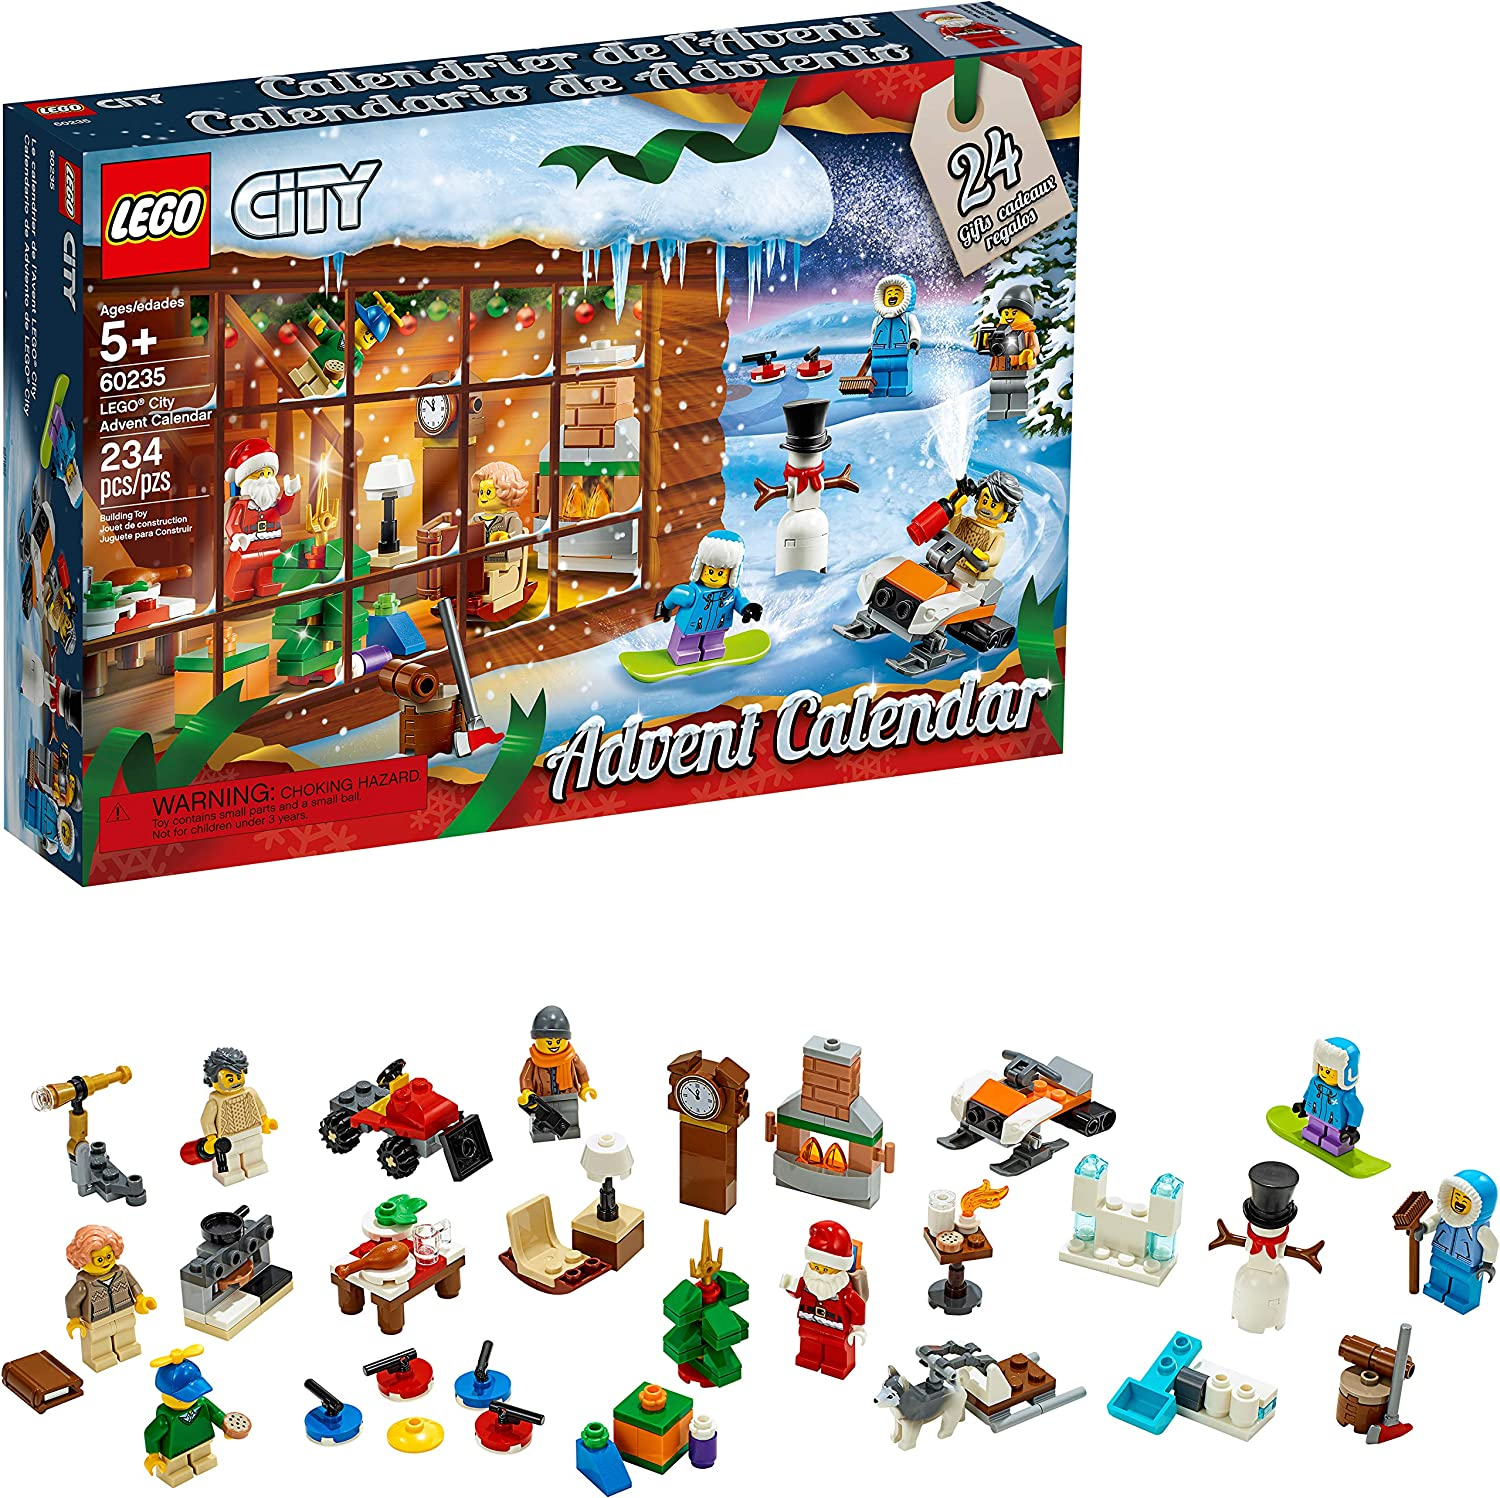 Amazon.com: LEGO City Advent Calendar 60235 Building Kit (234